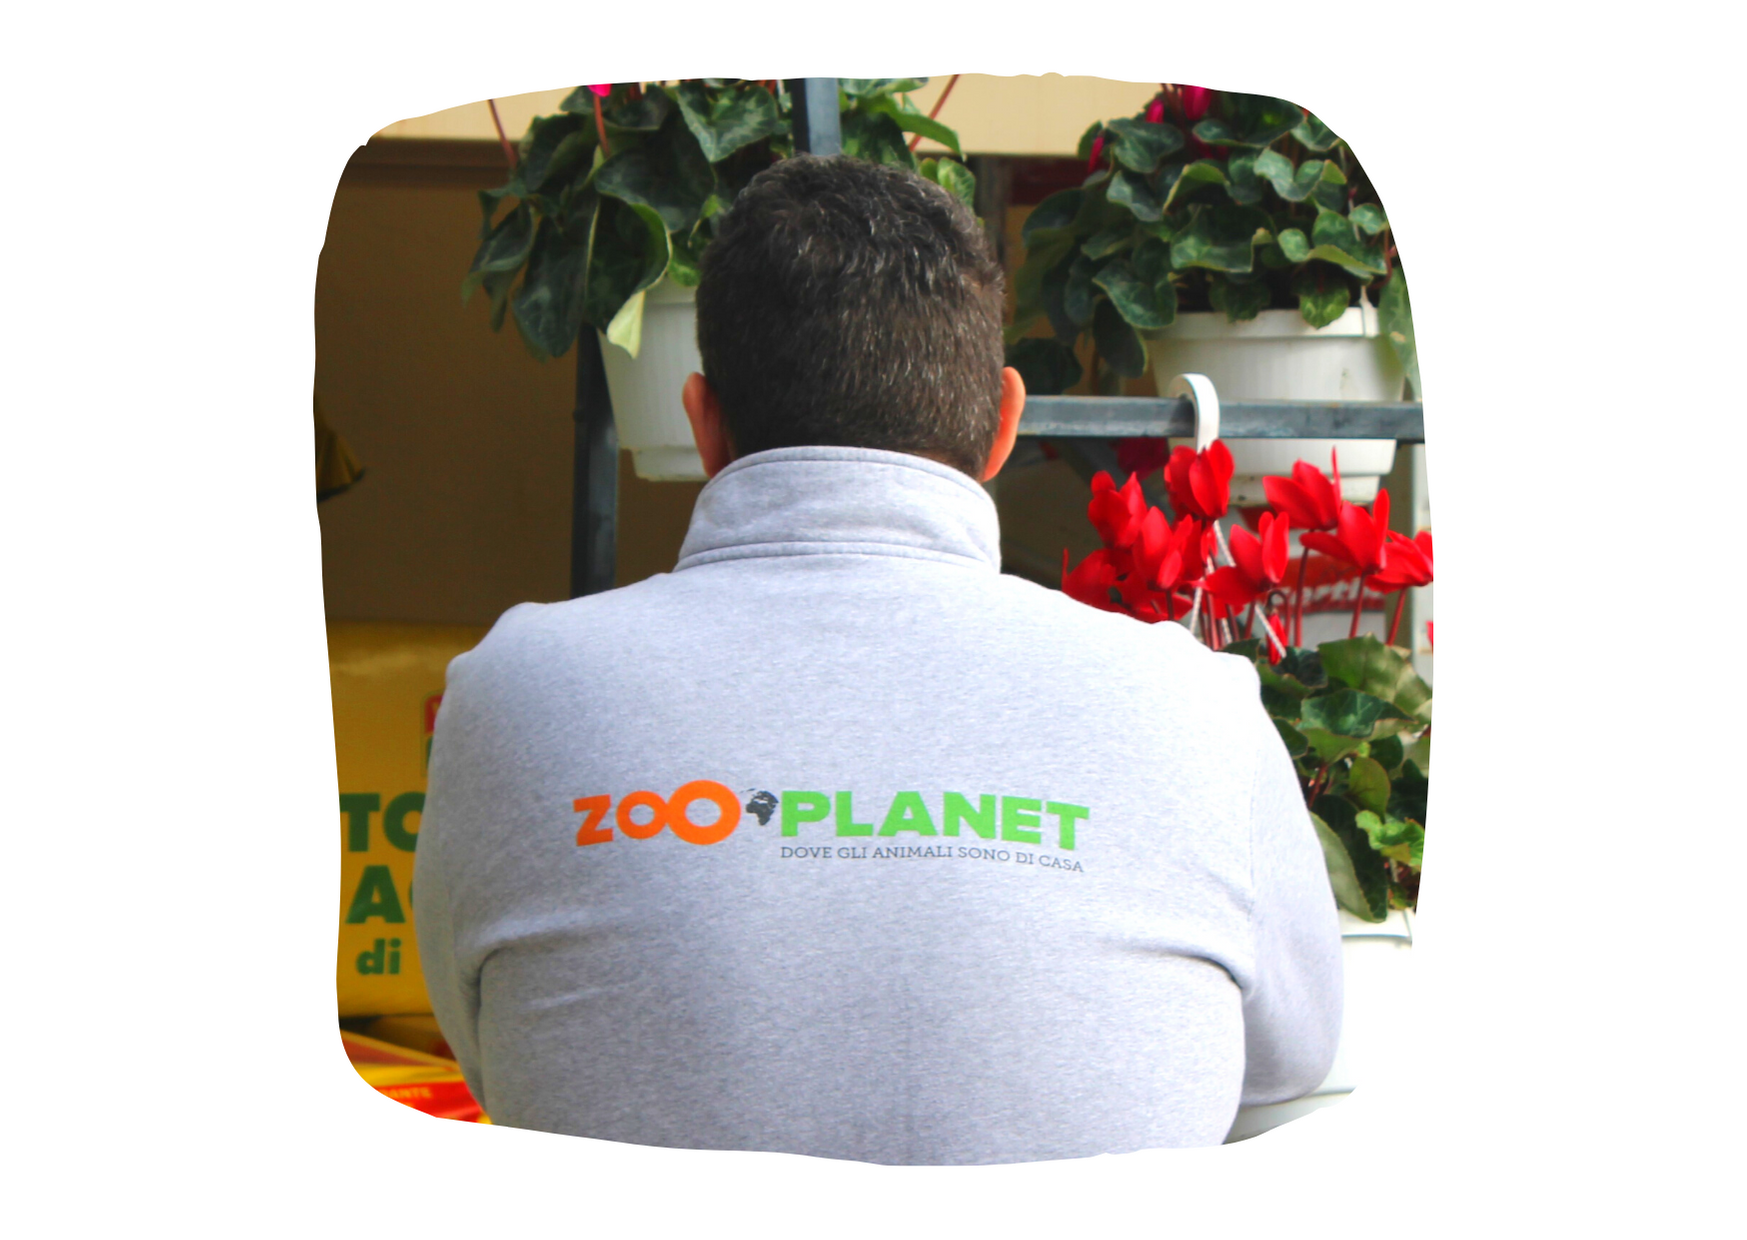 Zooplanet Franchising